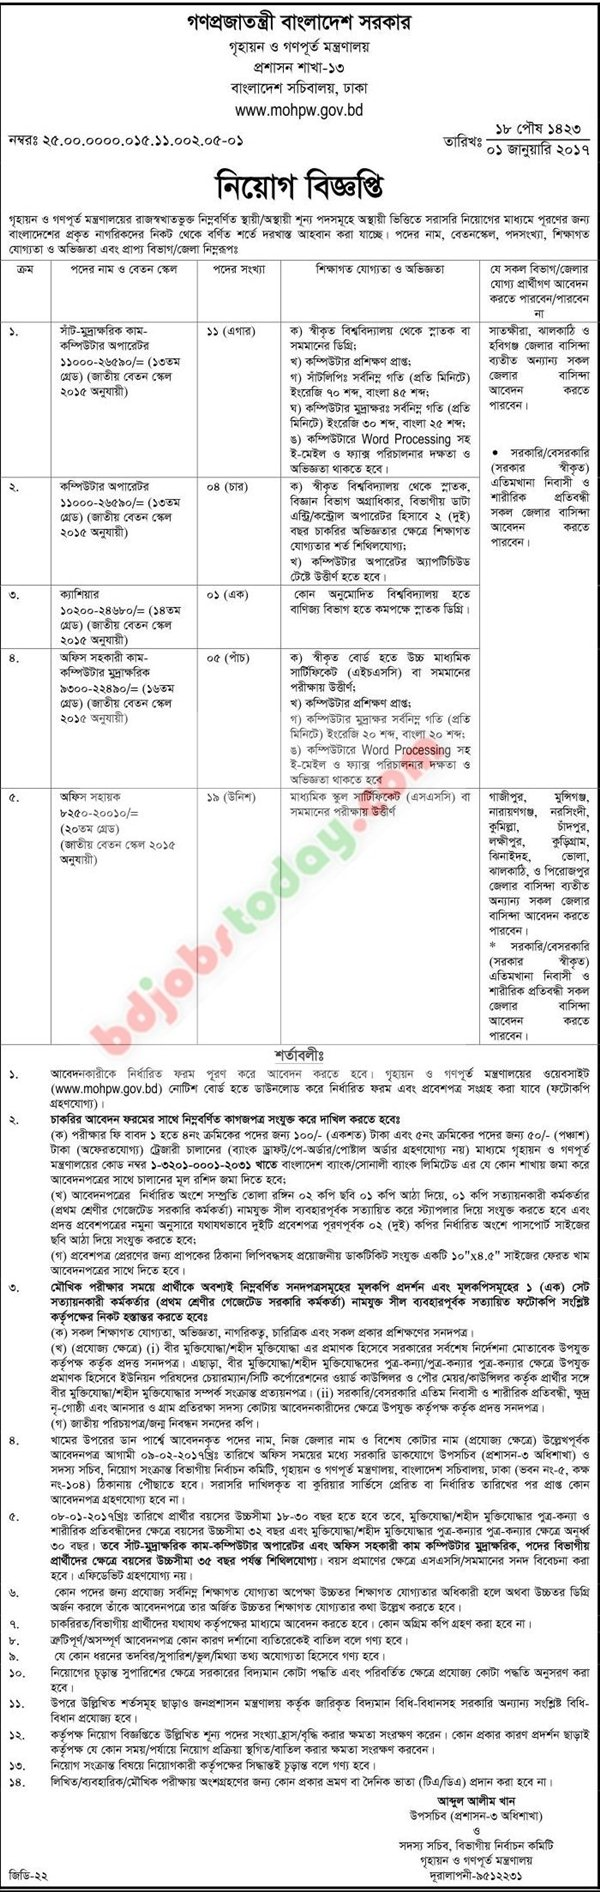 Ministry of Housing and Public Works jobs